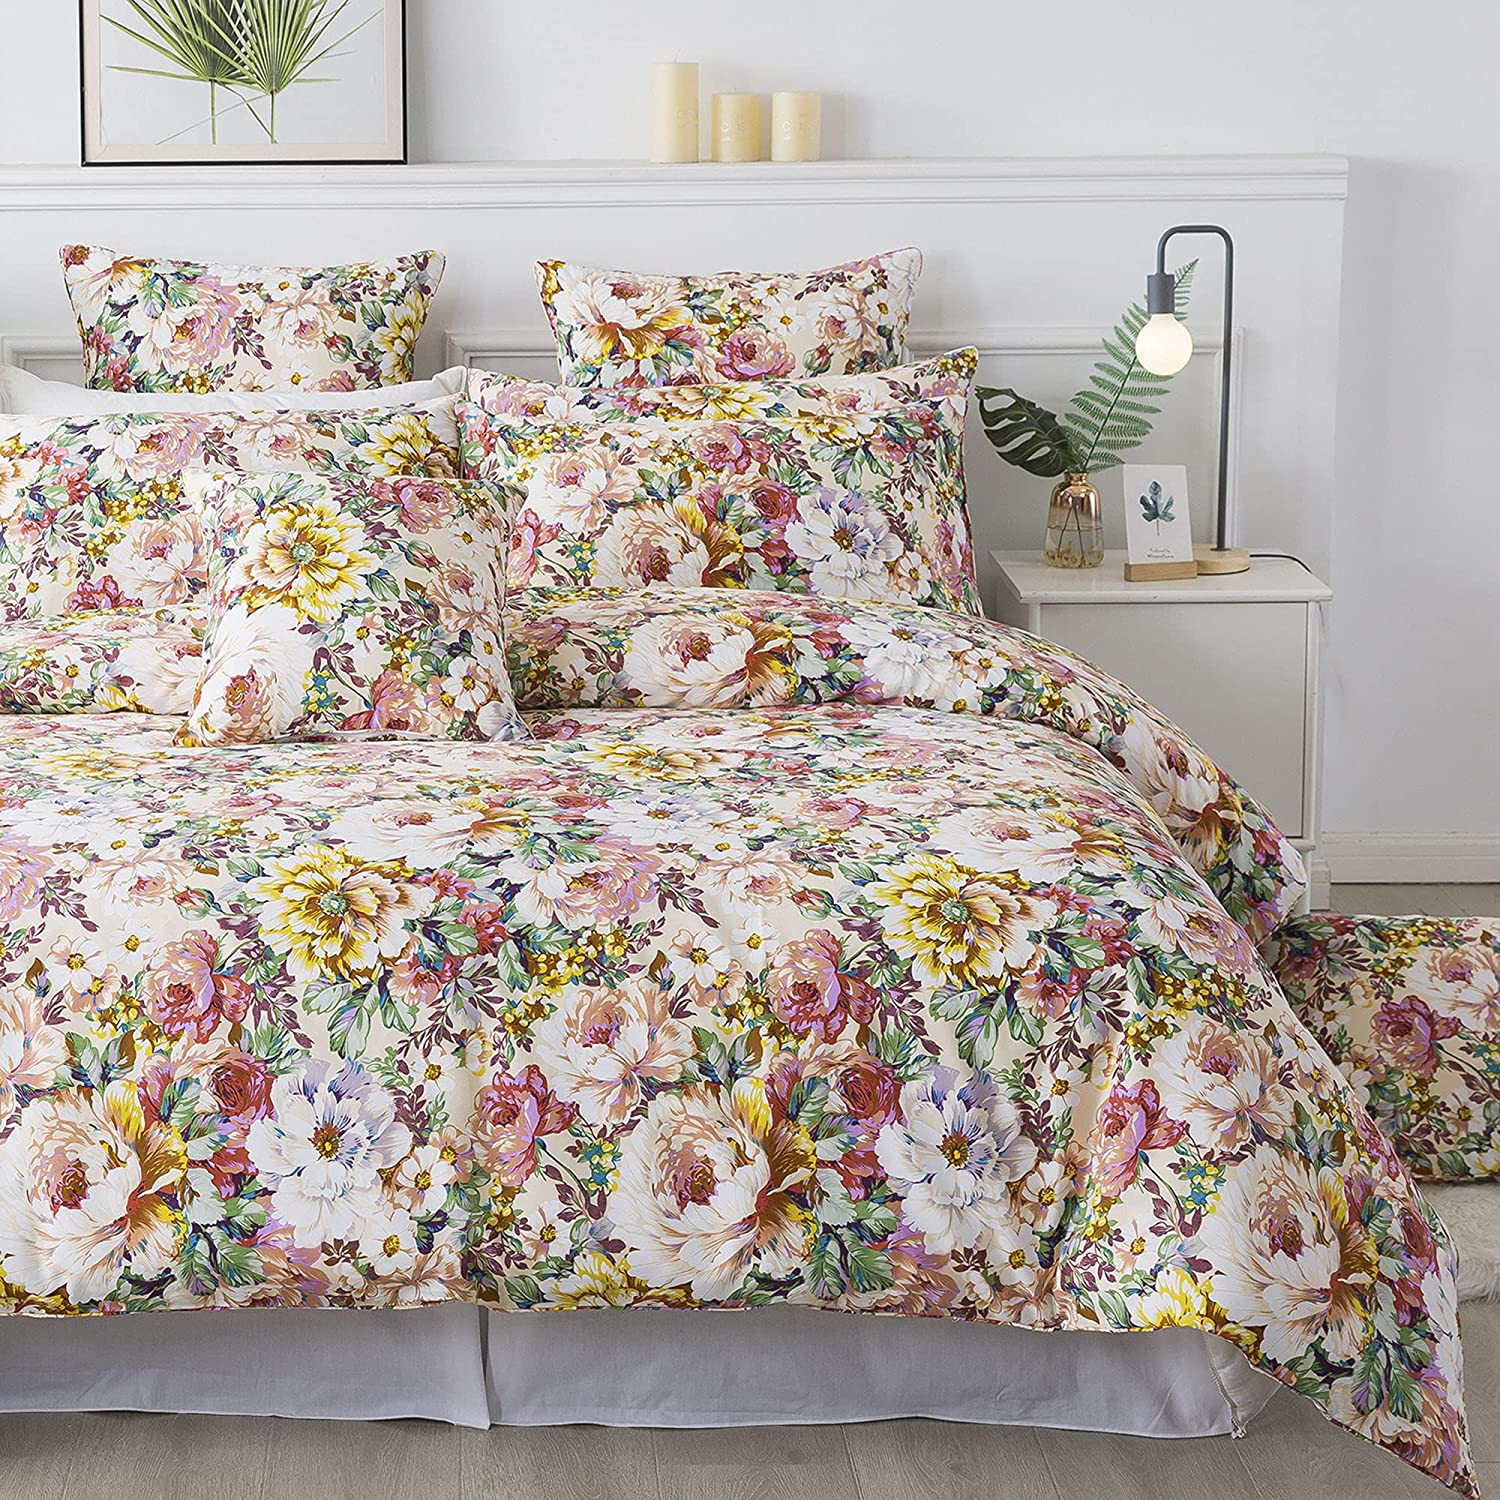 FADFAY Floral Bedding Set Twin Duvet Cover 100% Cotton Bedding 600 TC Colorful Salmon Pink Garden Flower Bed Cover Girls Romantic Peony Printed Shabby Vintage Zipper Corner Ties 3 Piece- No Filling